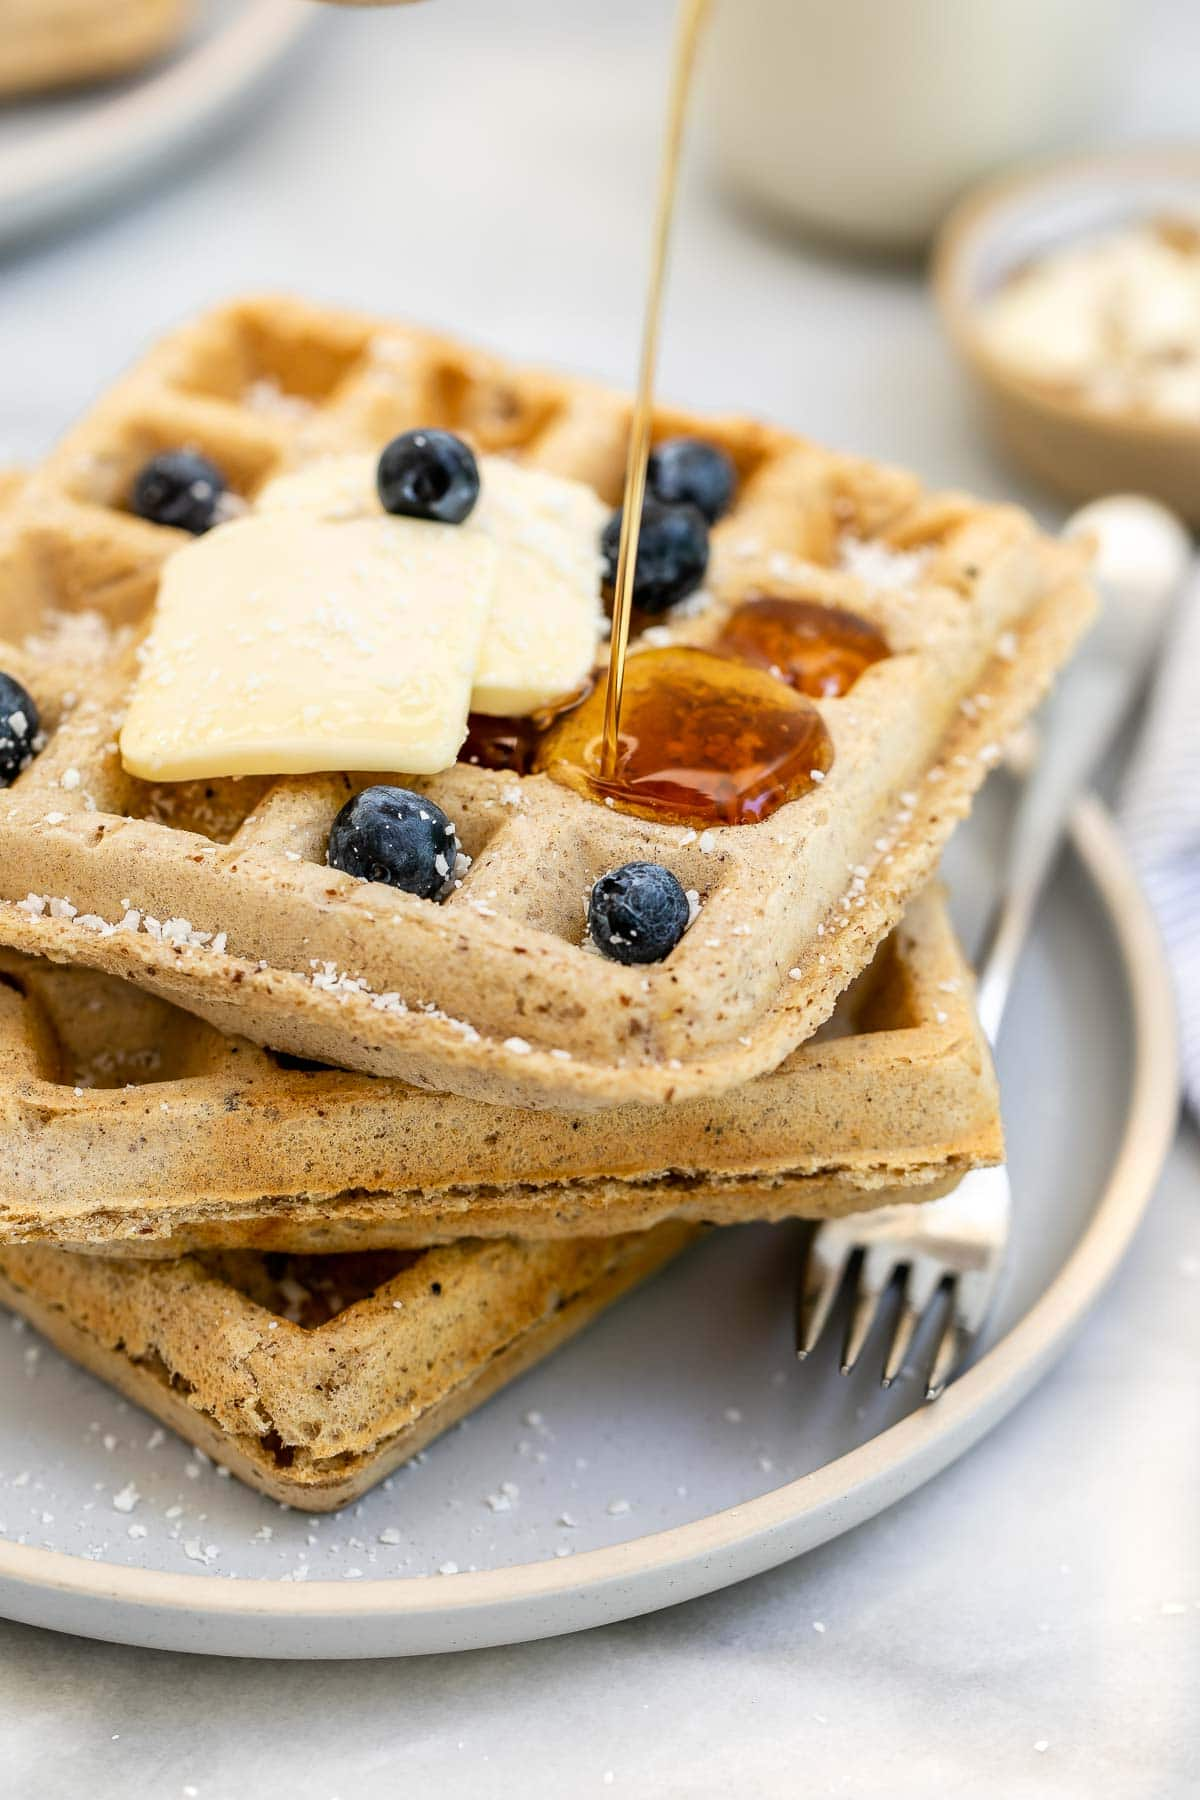 Waffles with maple syrup pouring down.